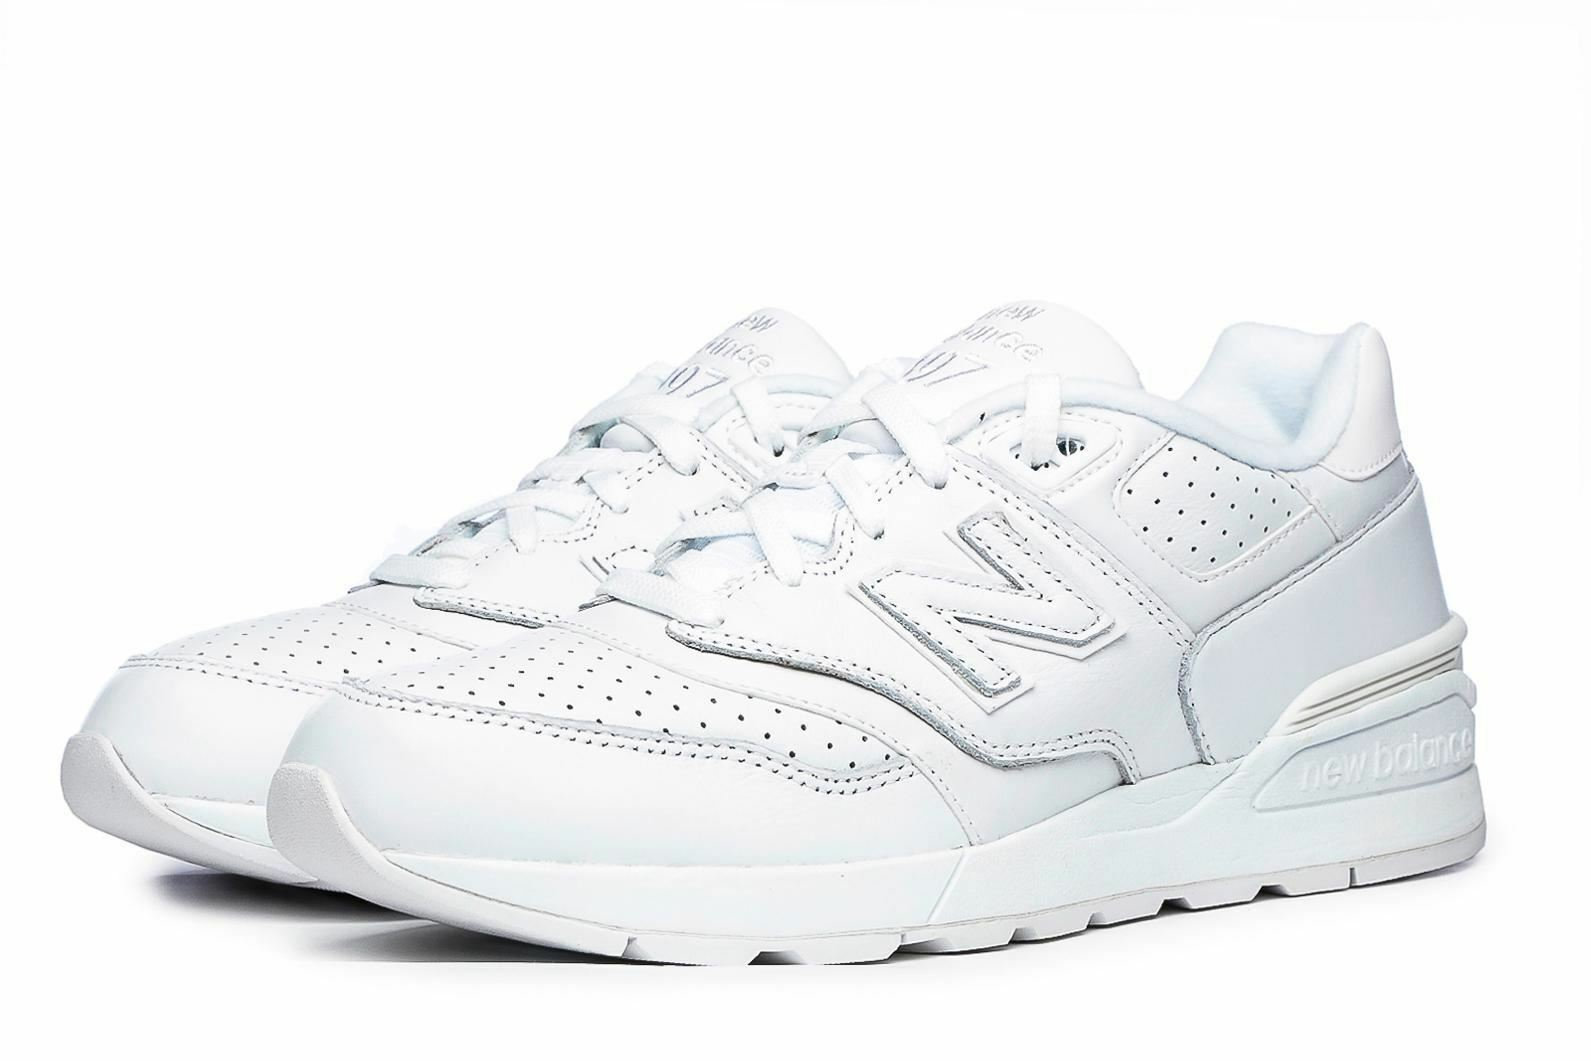 NEW BALANCE 597 TRAINERS WHITE SHOES LEATHER SPORTS MENS SNEAKERS RUN ML597WHL